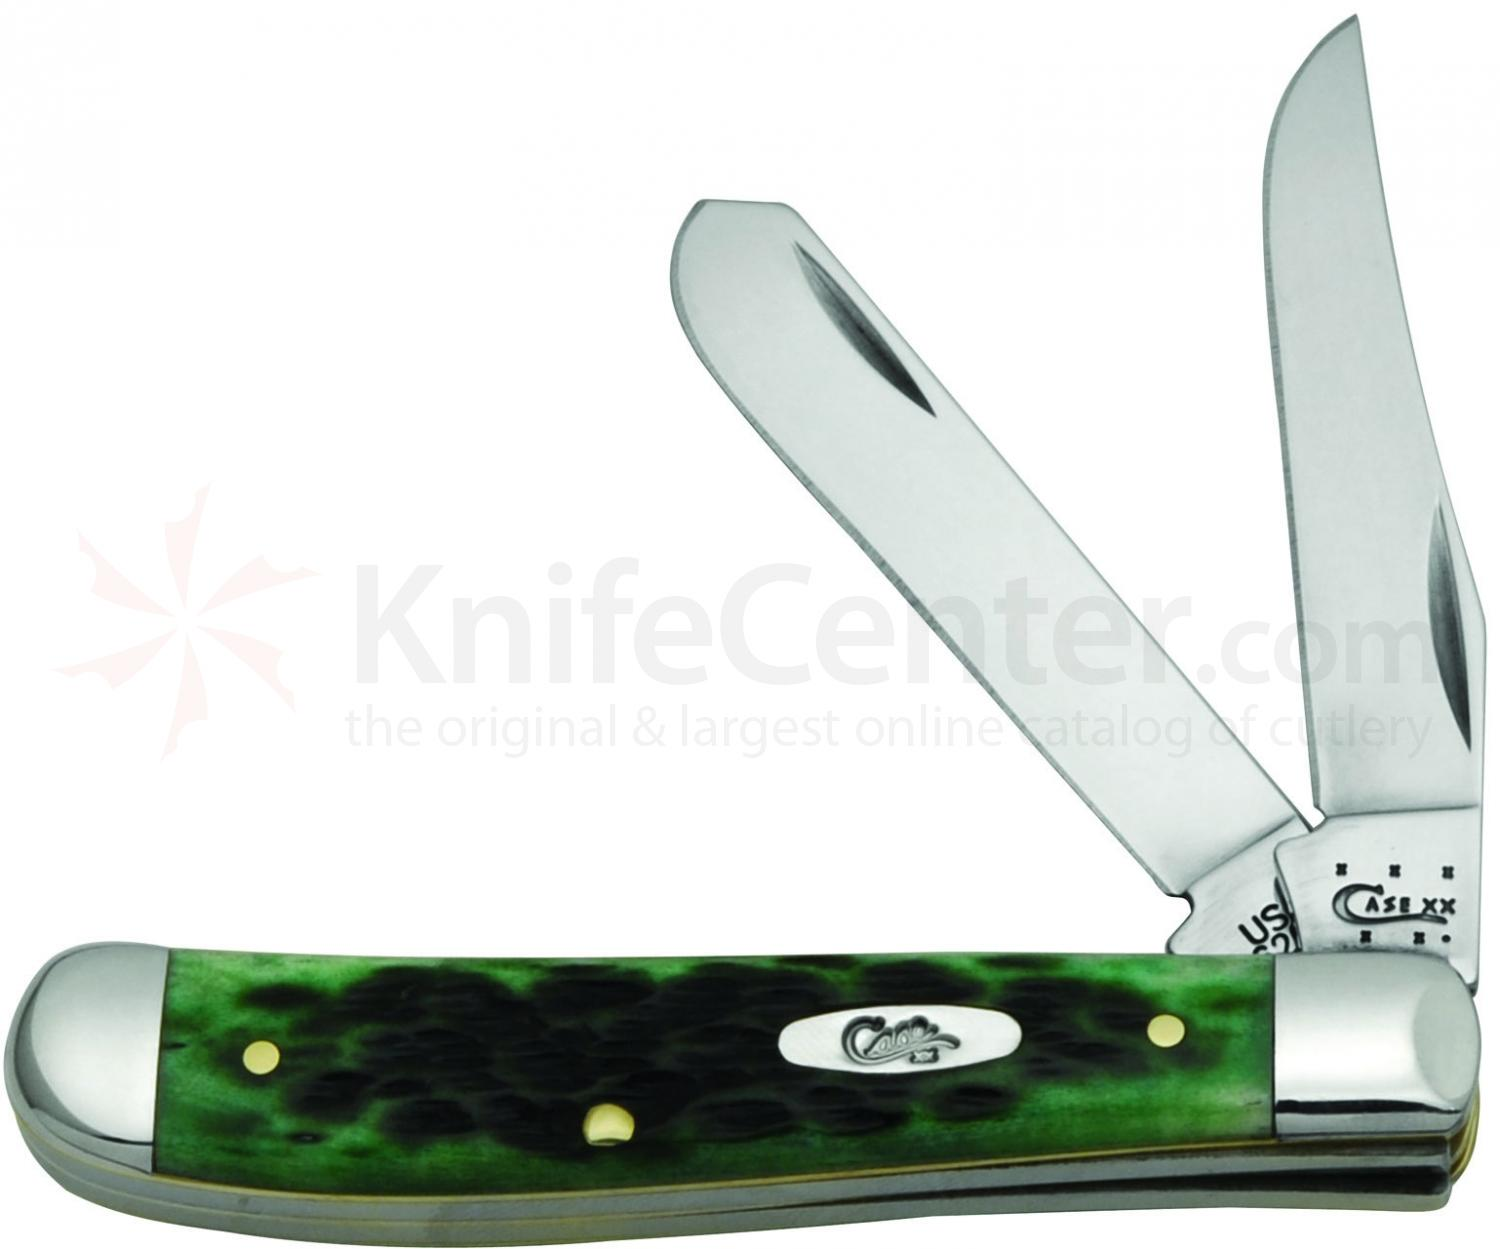 Case Pocket Worn Bermuda Green Bone Mini Trapper 3.5 inch Closed (6207 SS)